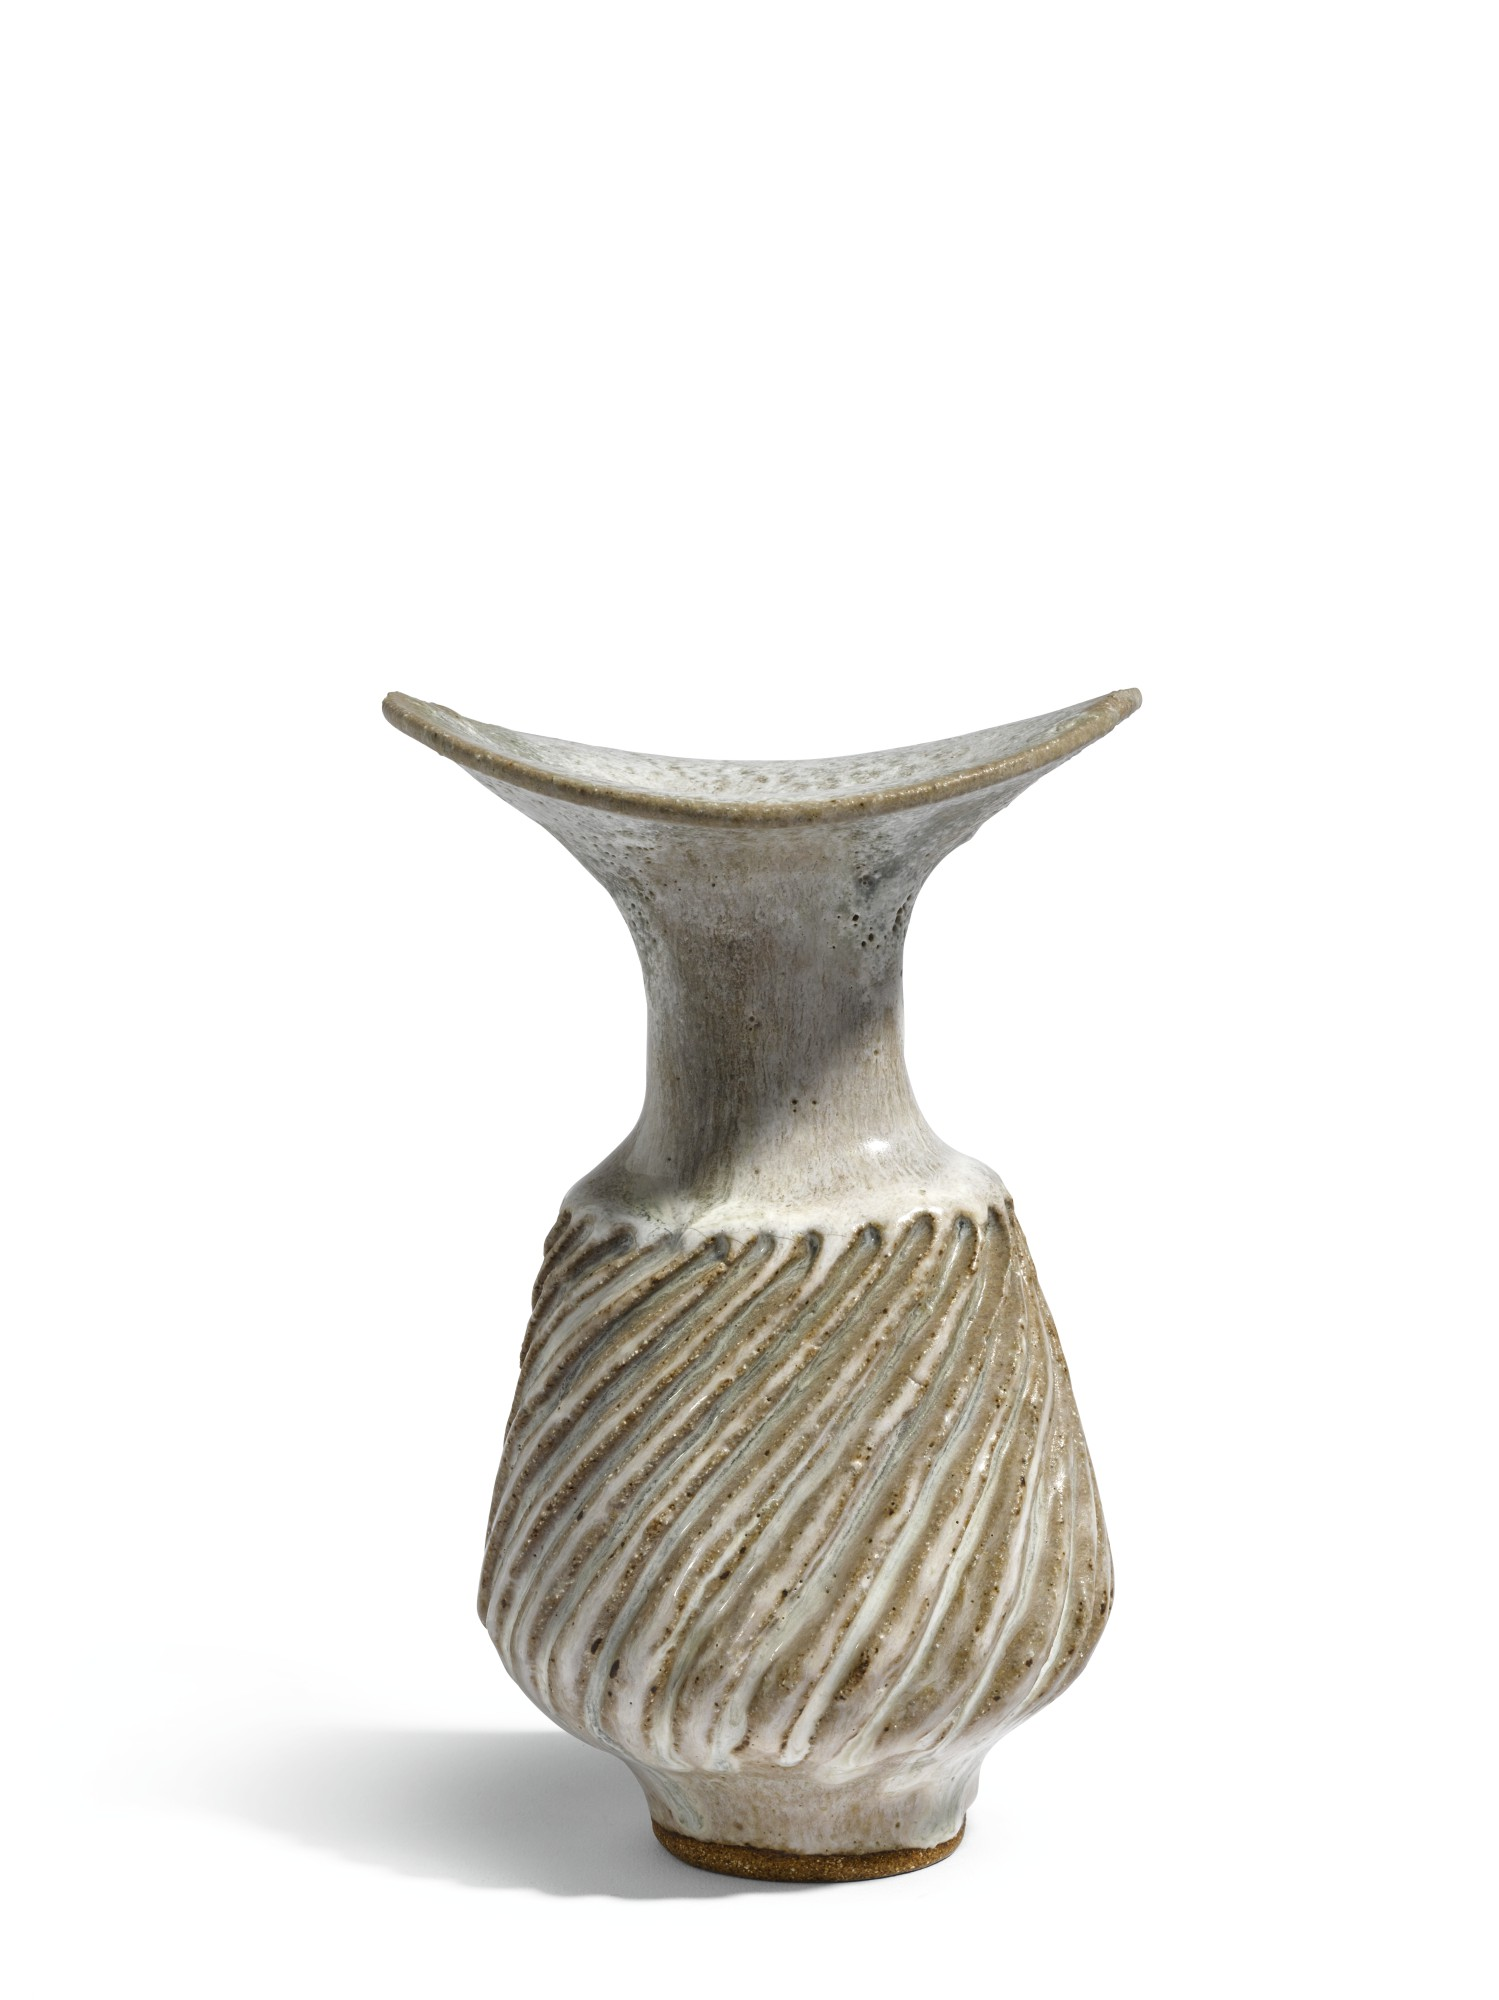 DAME LUCIE RIE | VASE WITH FLUTED BODY AND FLARING LIP